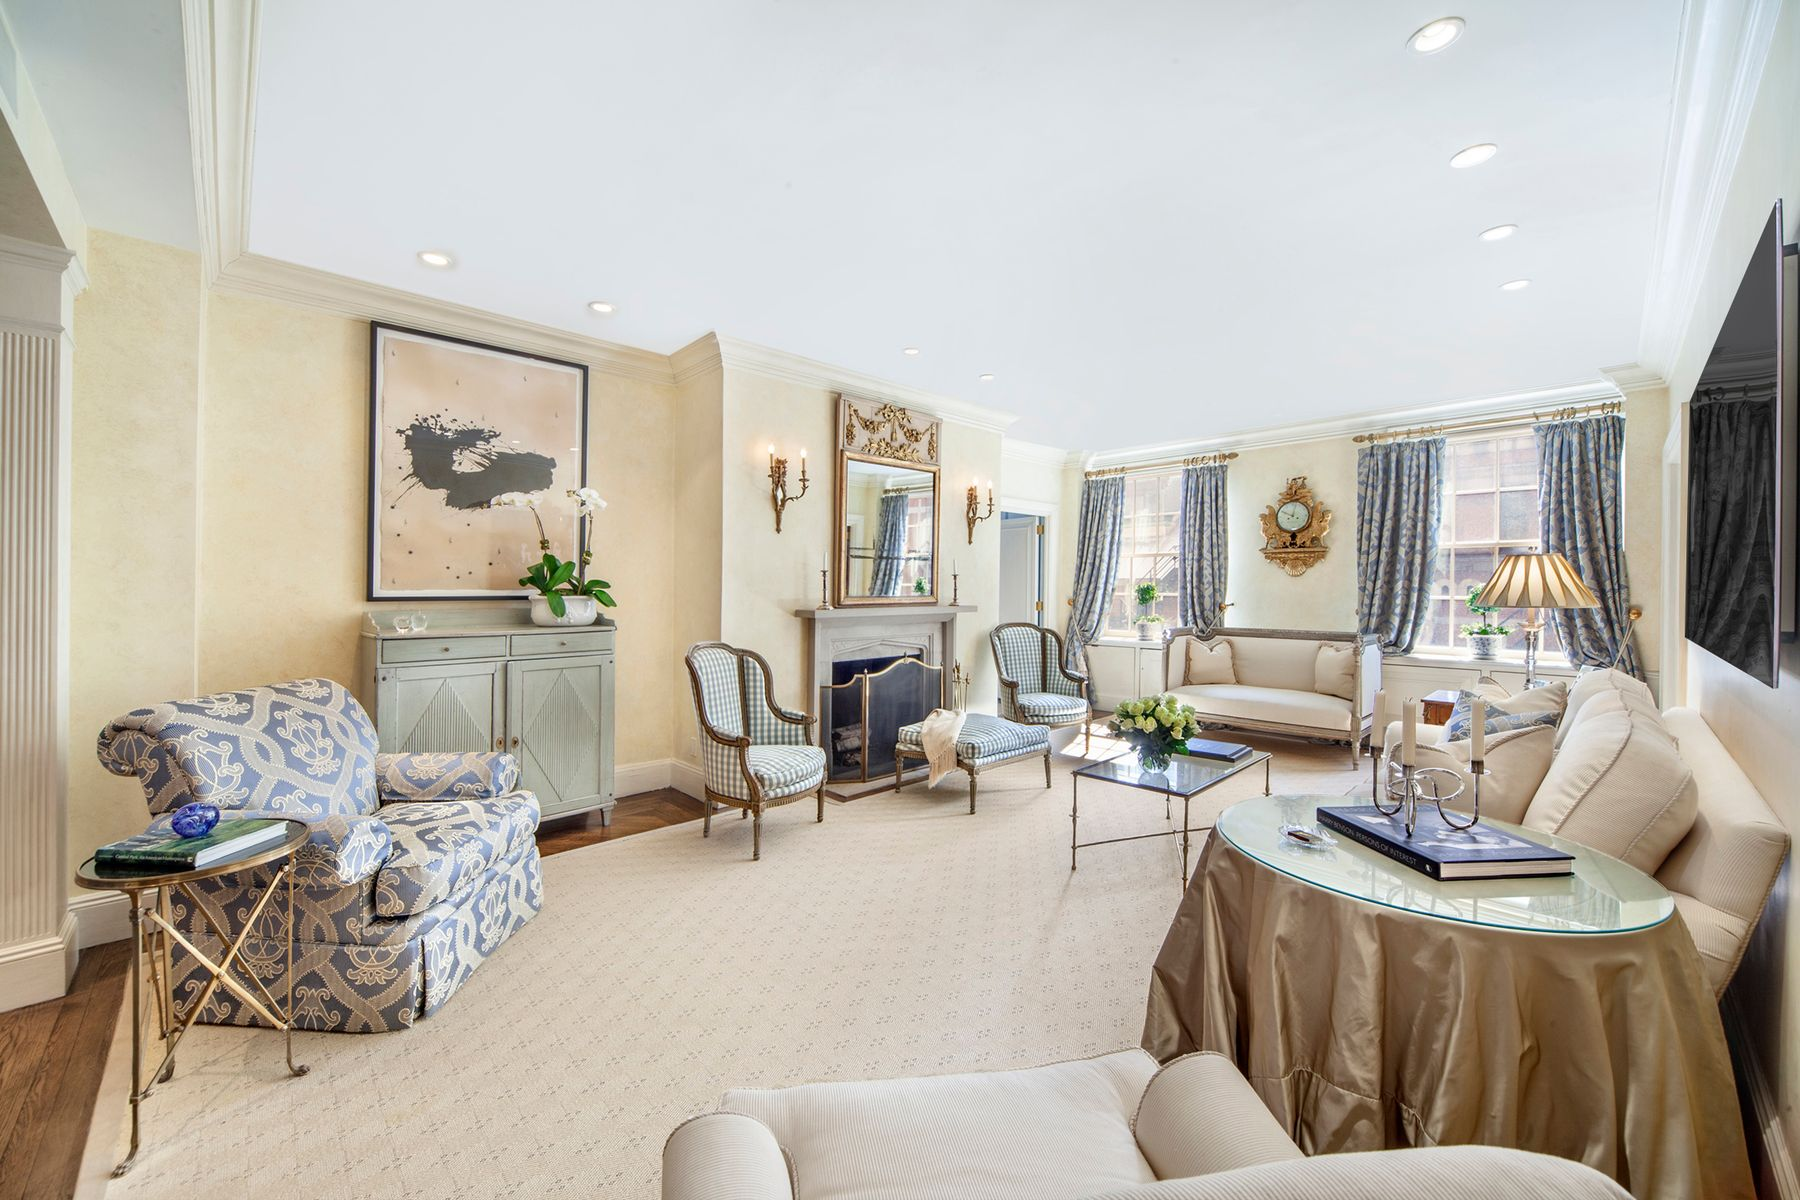 Co-op Properties for Sale at 655 Park Avenue Apt 4E New York, NY 655 Park Avenue 4E New York, New York 10065 United States